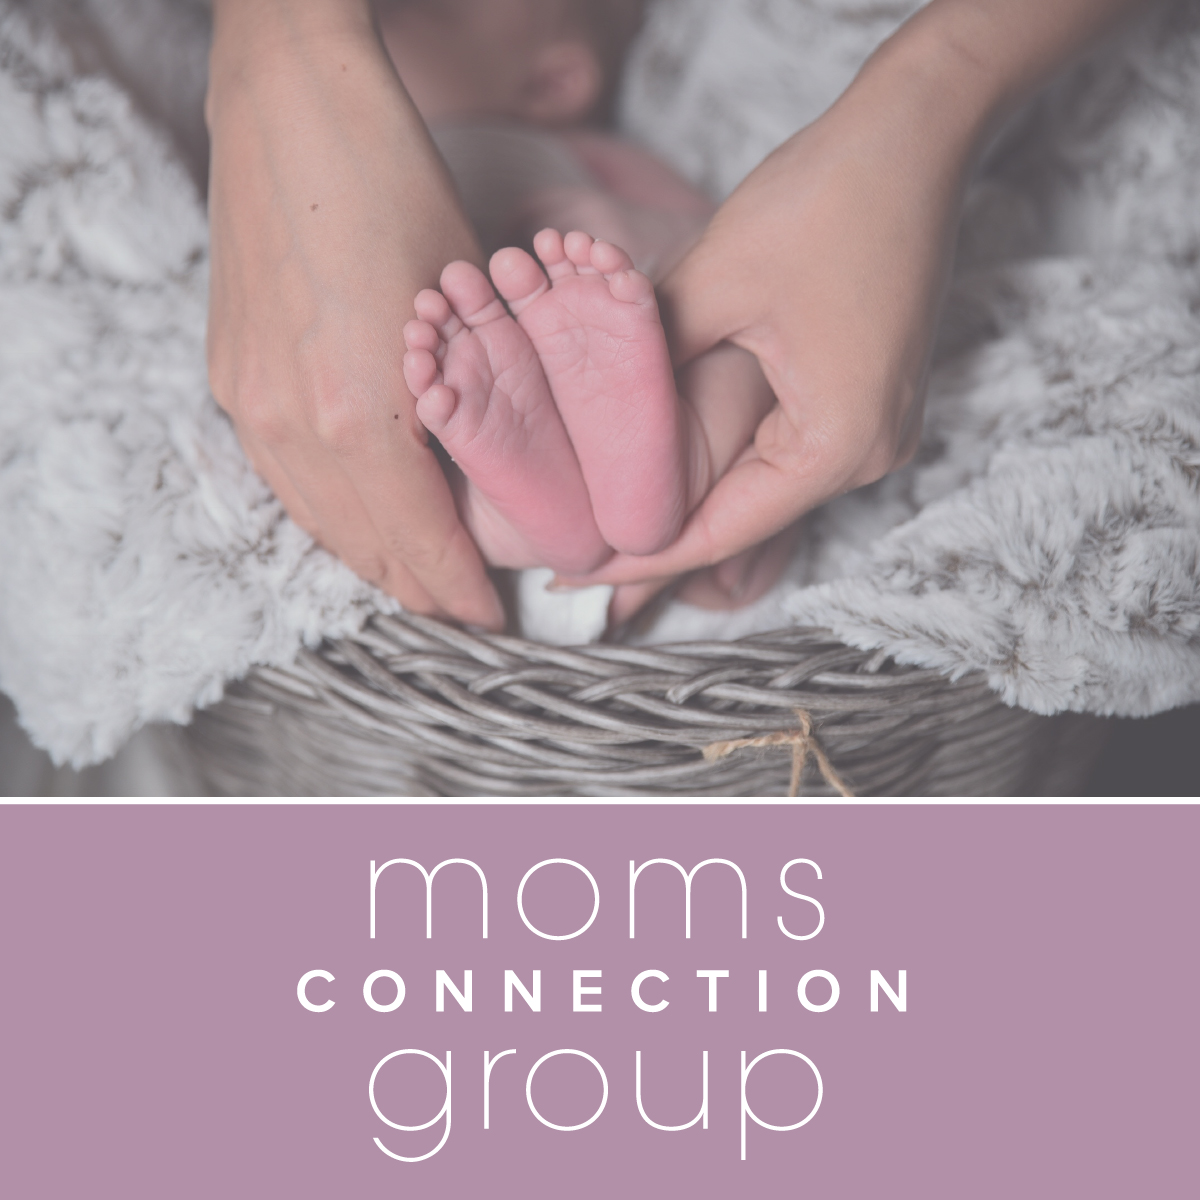 momsconnectiongroup2.jpg